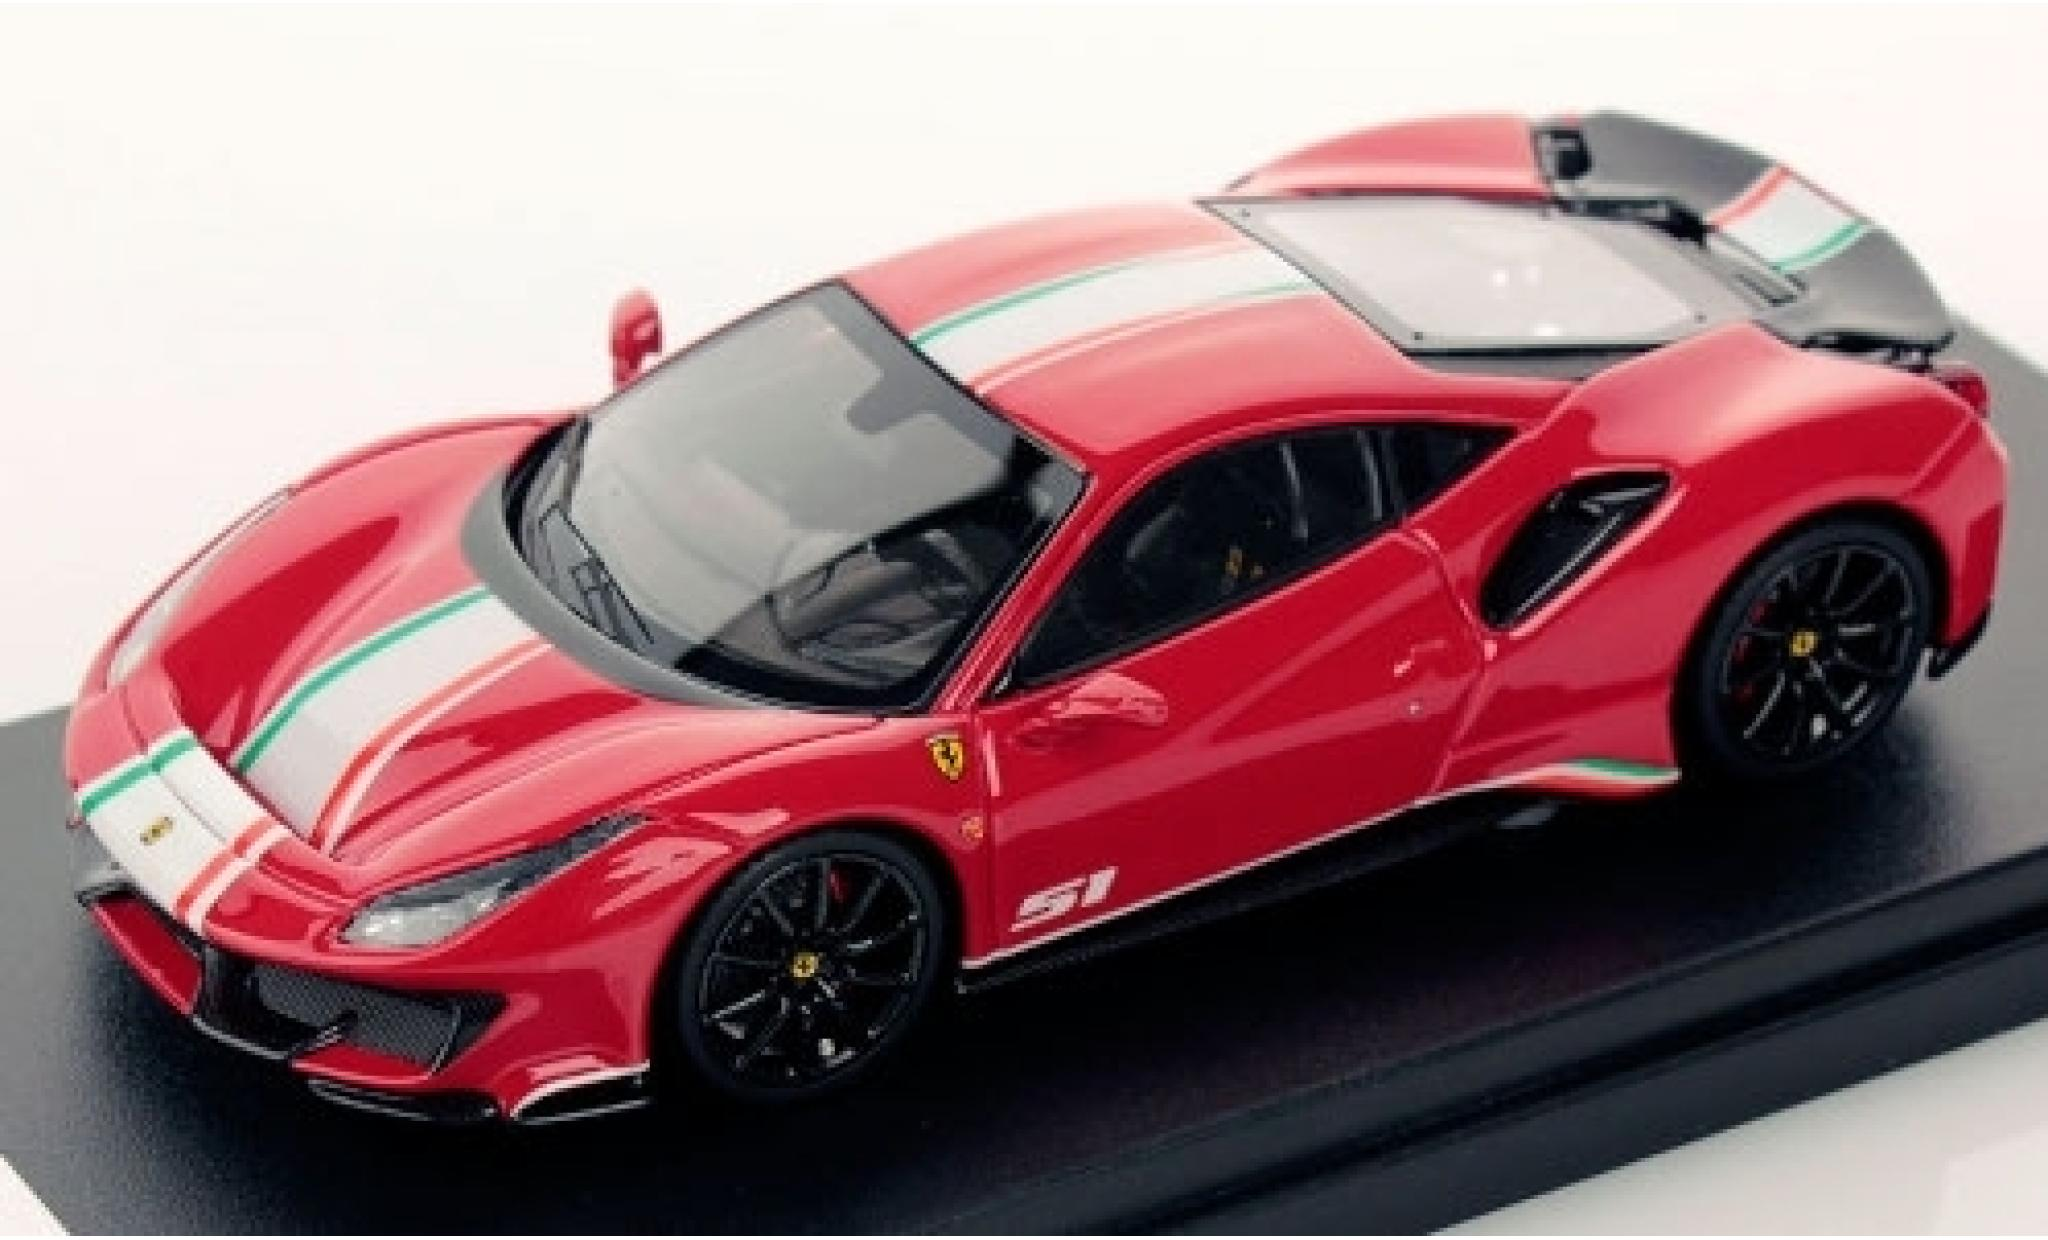 Ferrari 488 1/43 Look Smart Pista Piloti rouge/Dekor